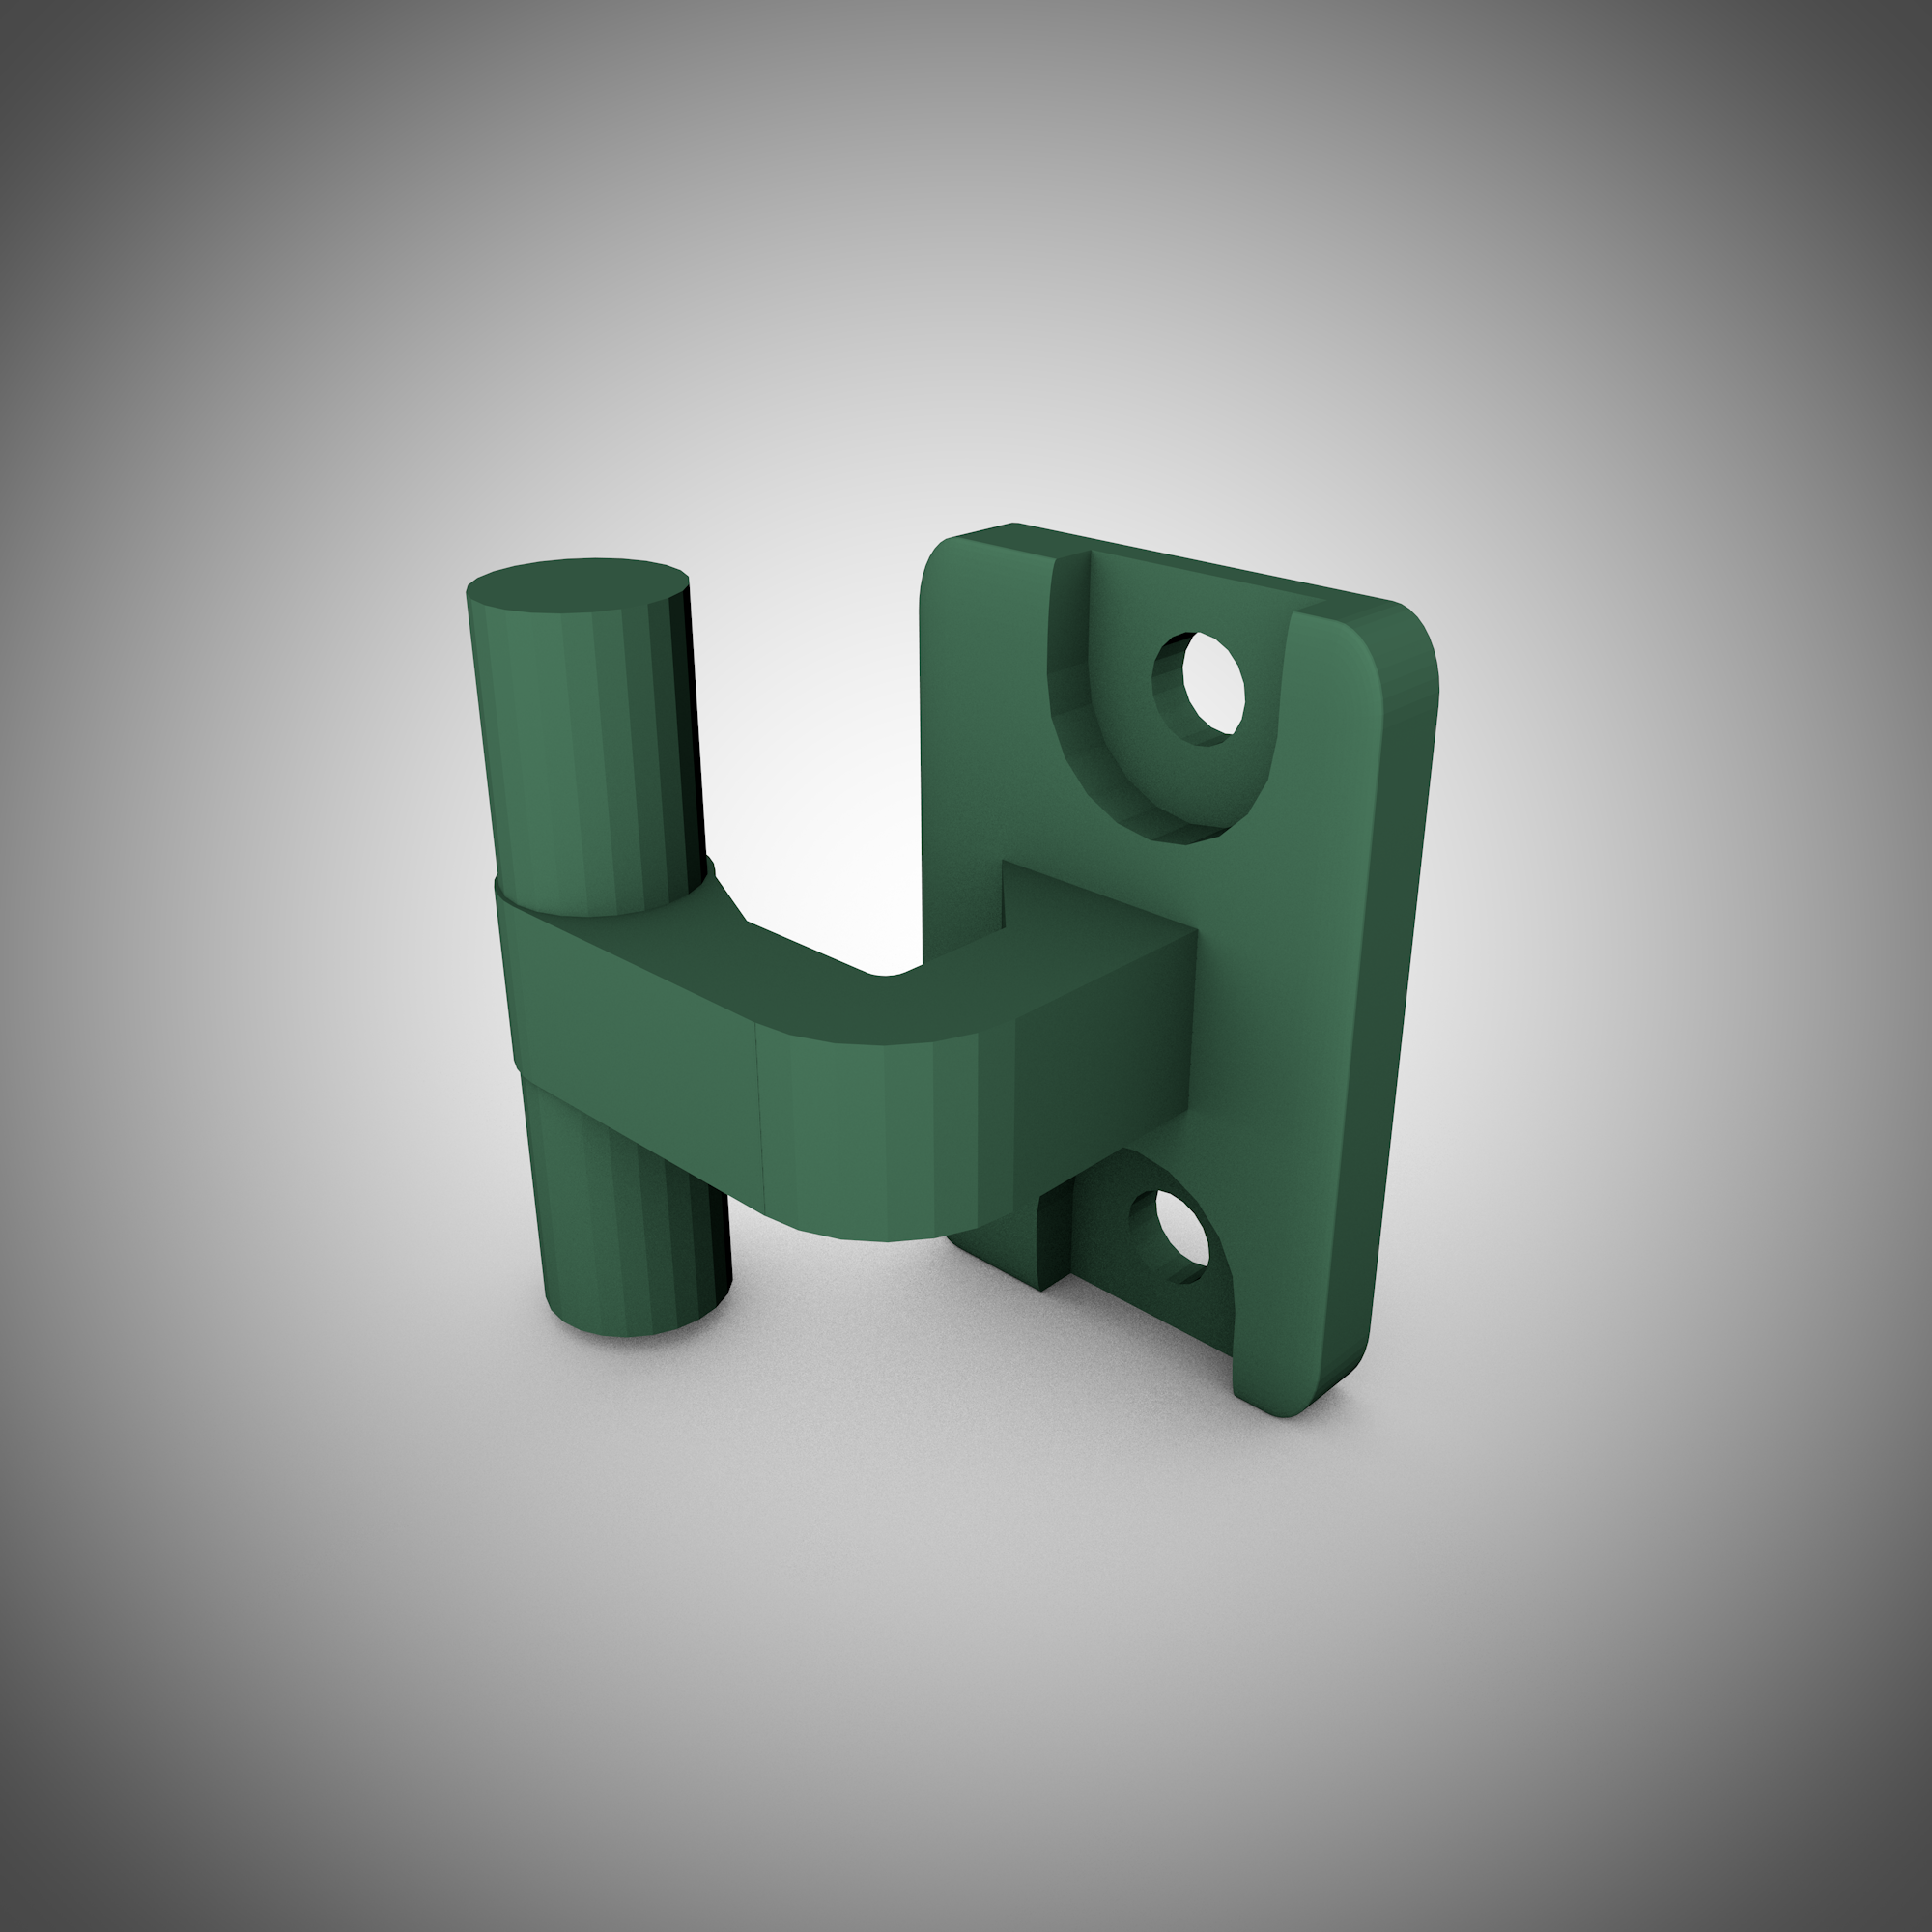 Hinge Design for Dryer Replacement Part